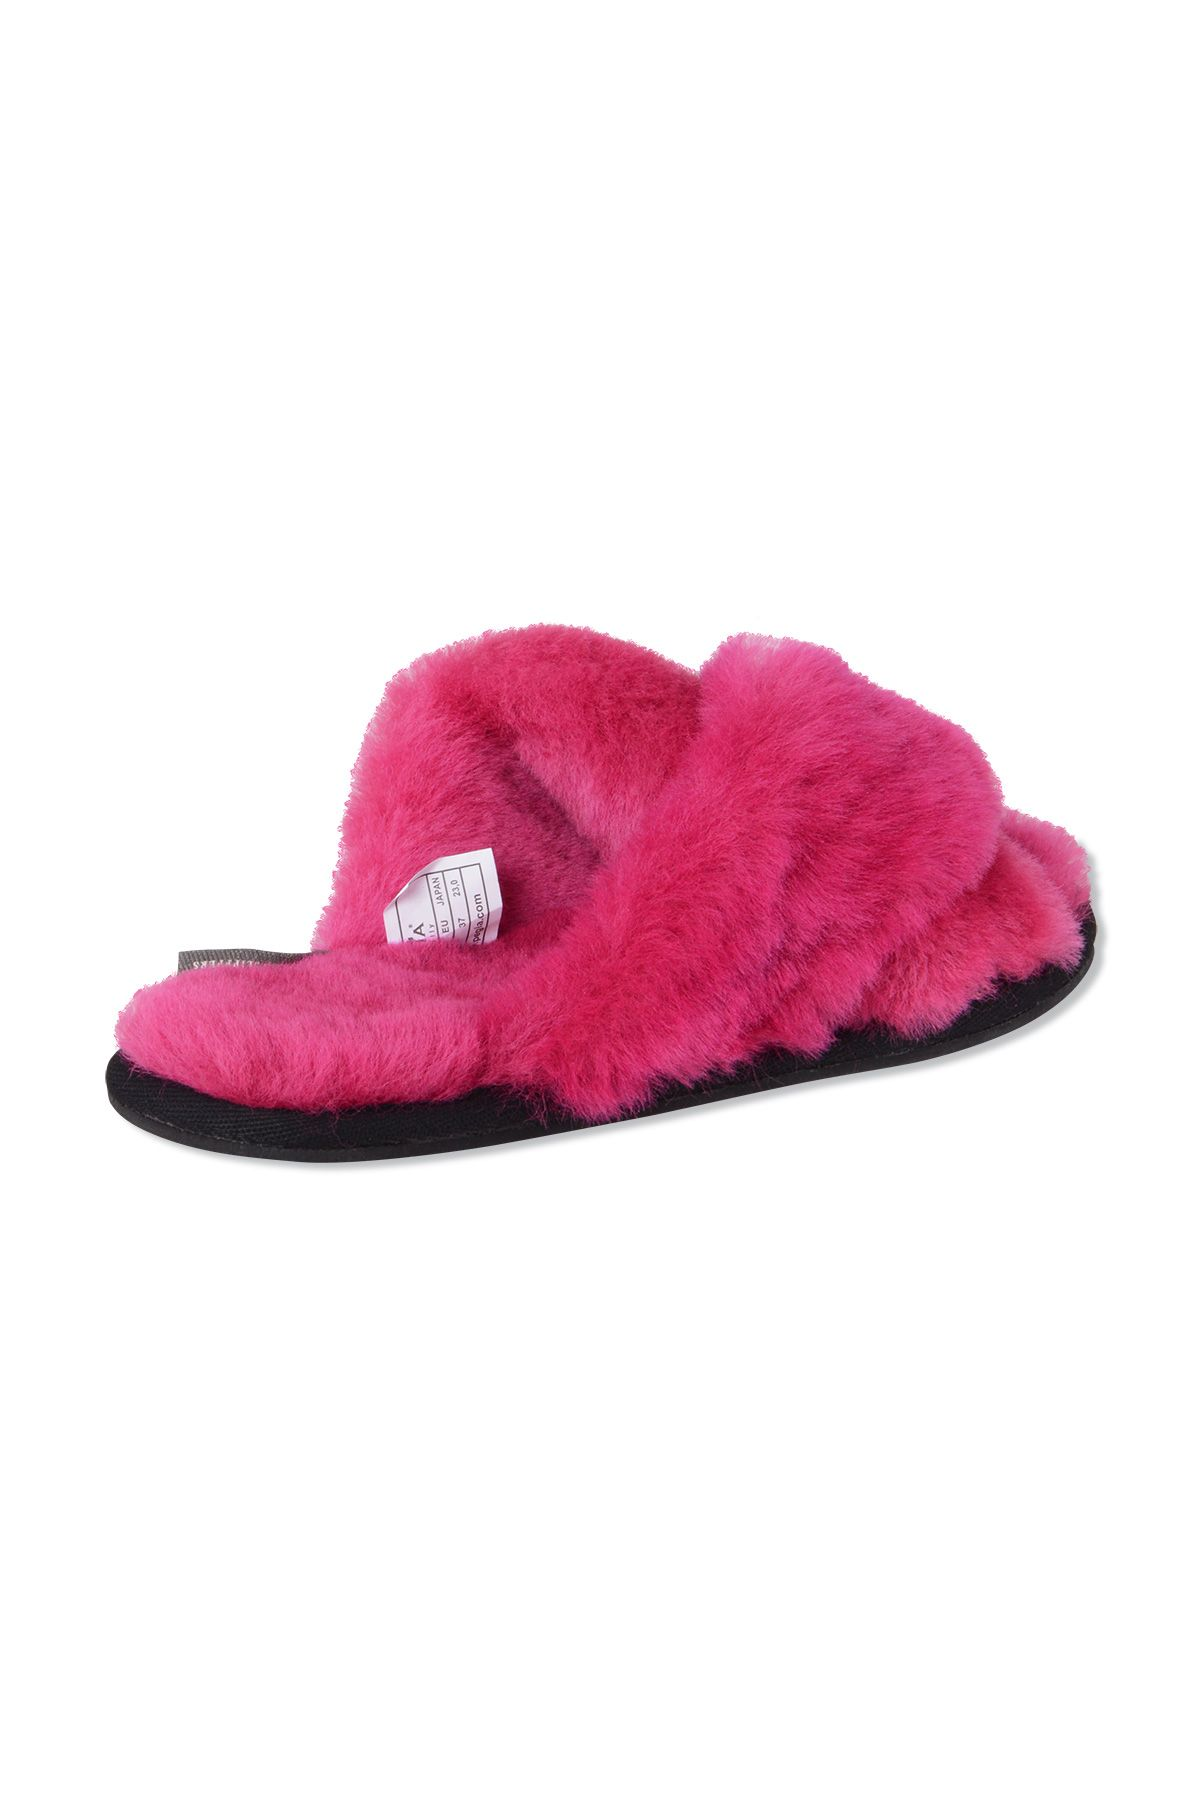 Pegia Women's Shearling Slippers 191096 Magenta